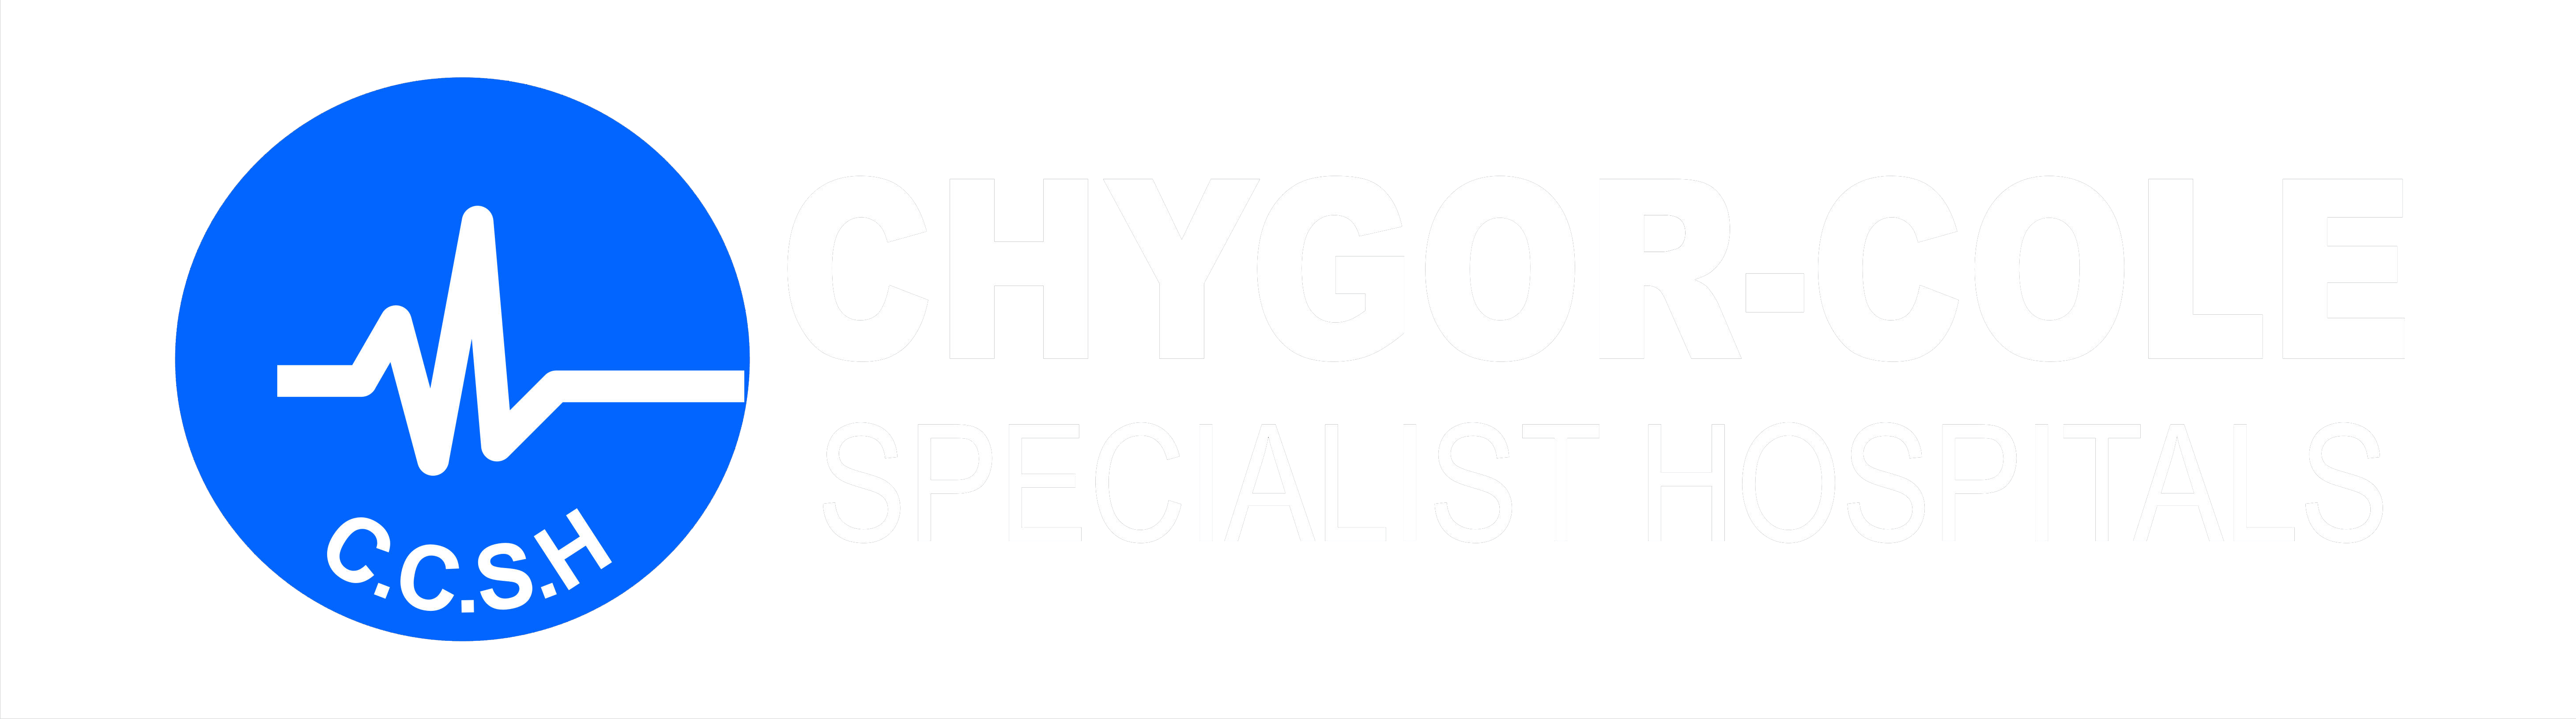 CHYGOR-COLE SPECIALIST HOSPITALS